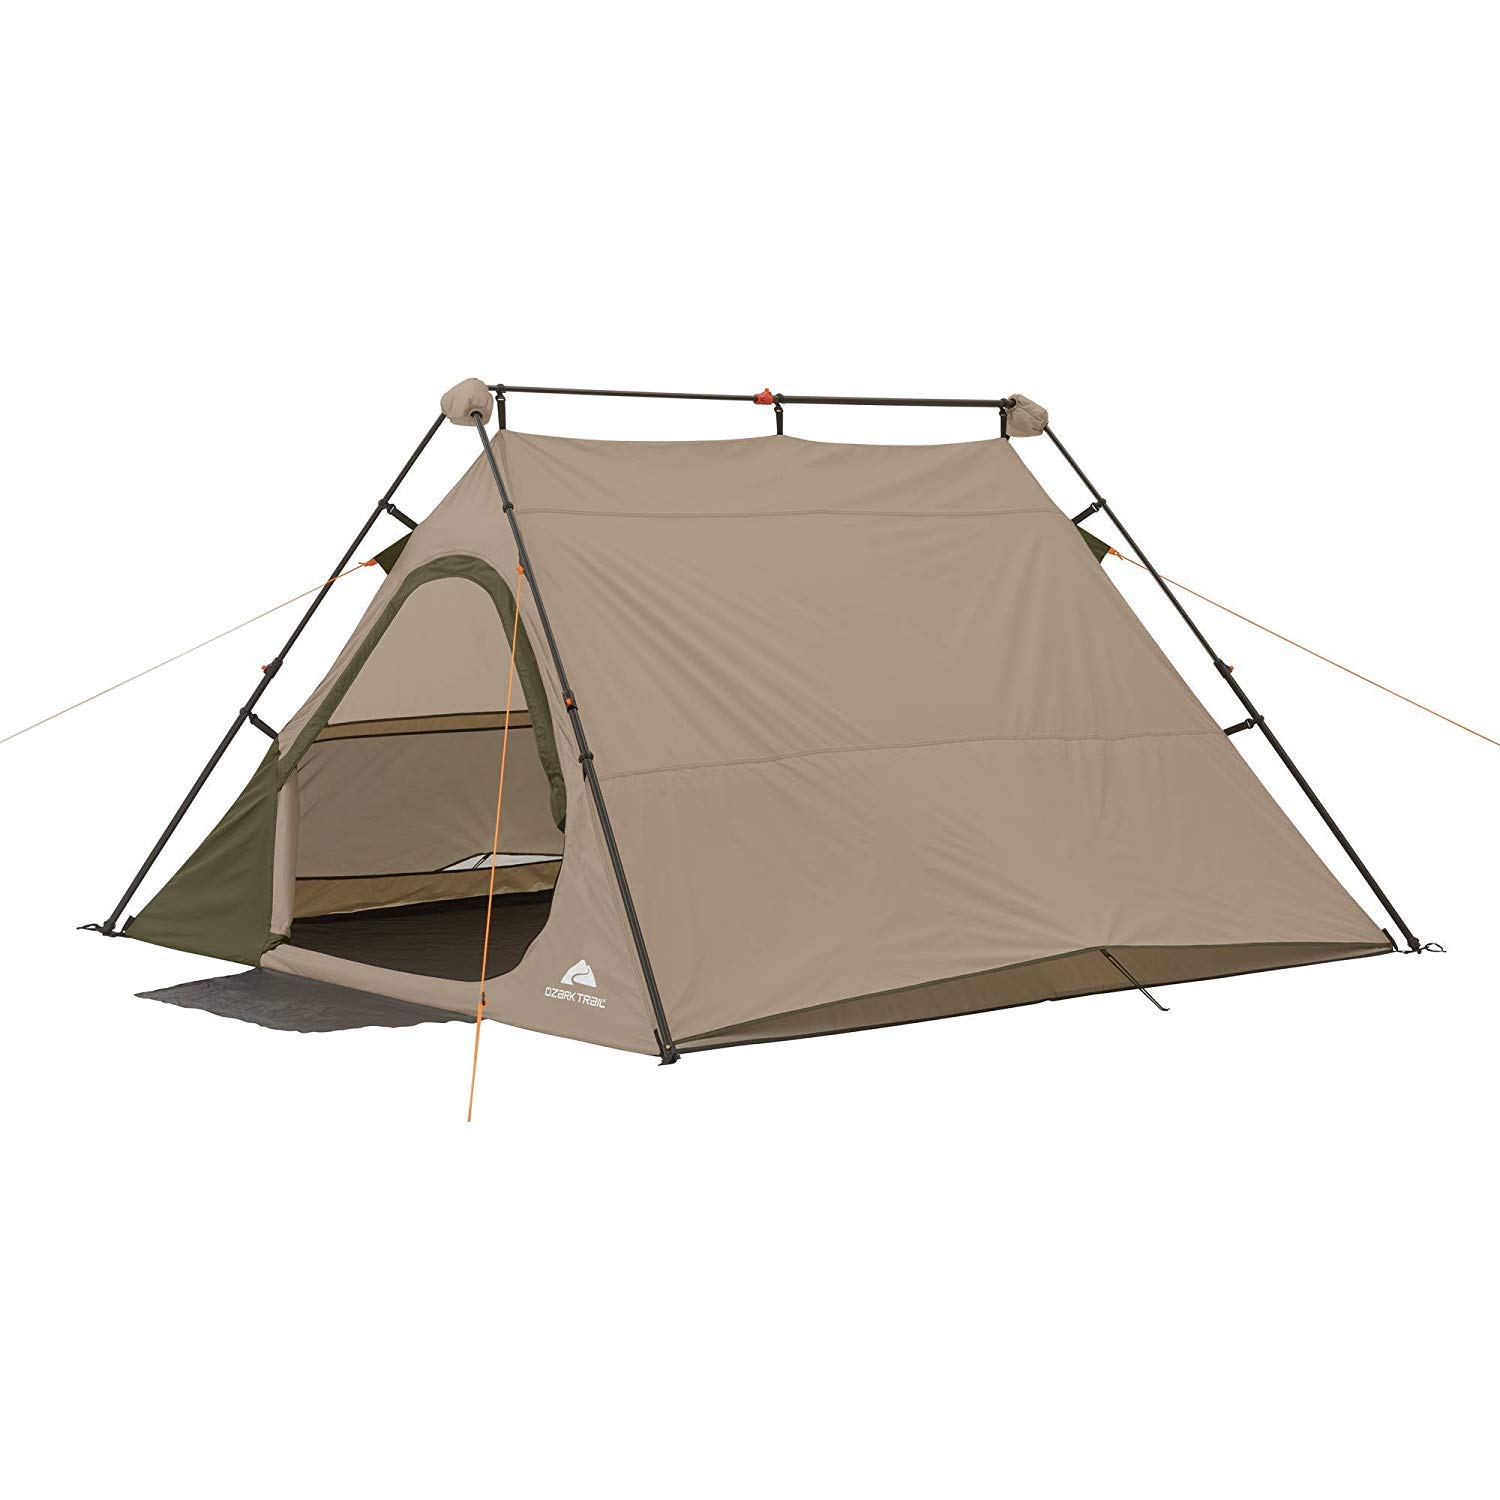 Ozark Trail* 4-Person 8' x 7' Instant A-Frame Tent